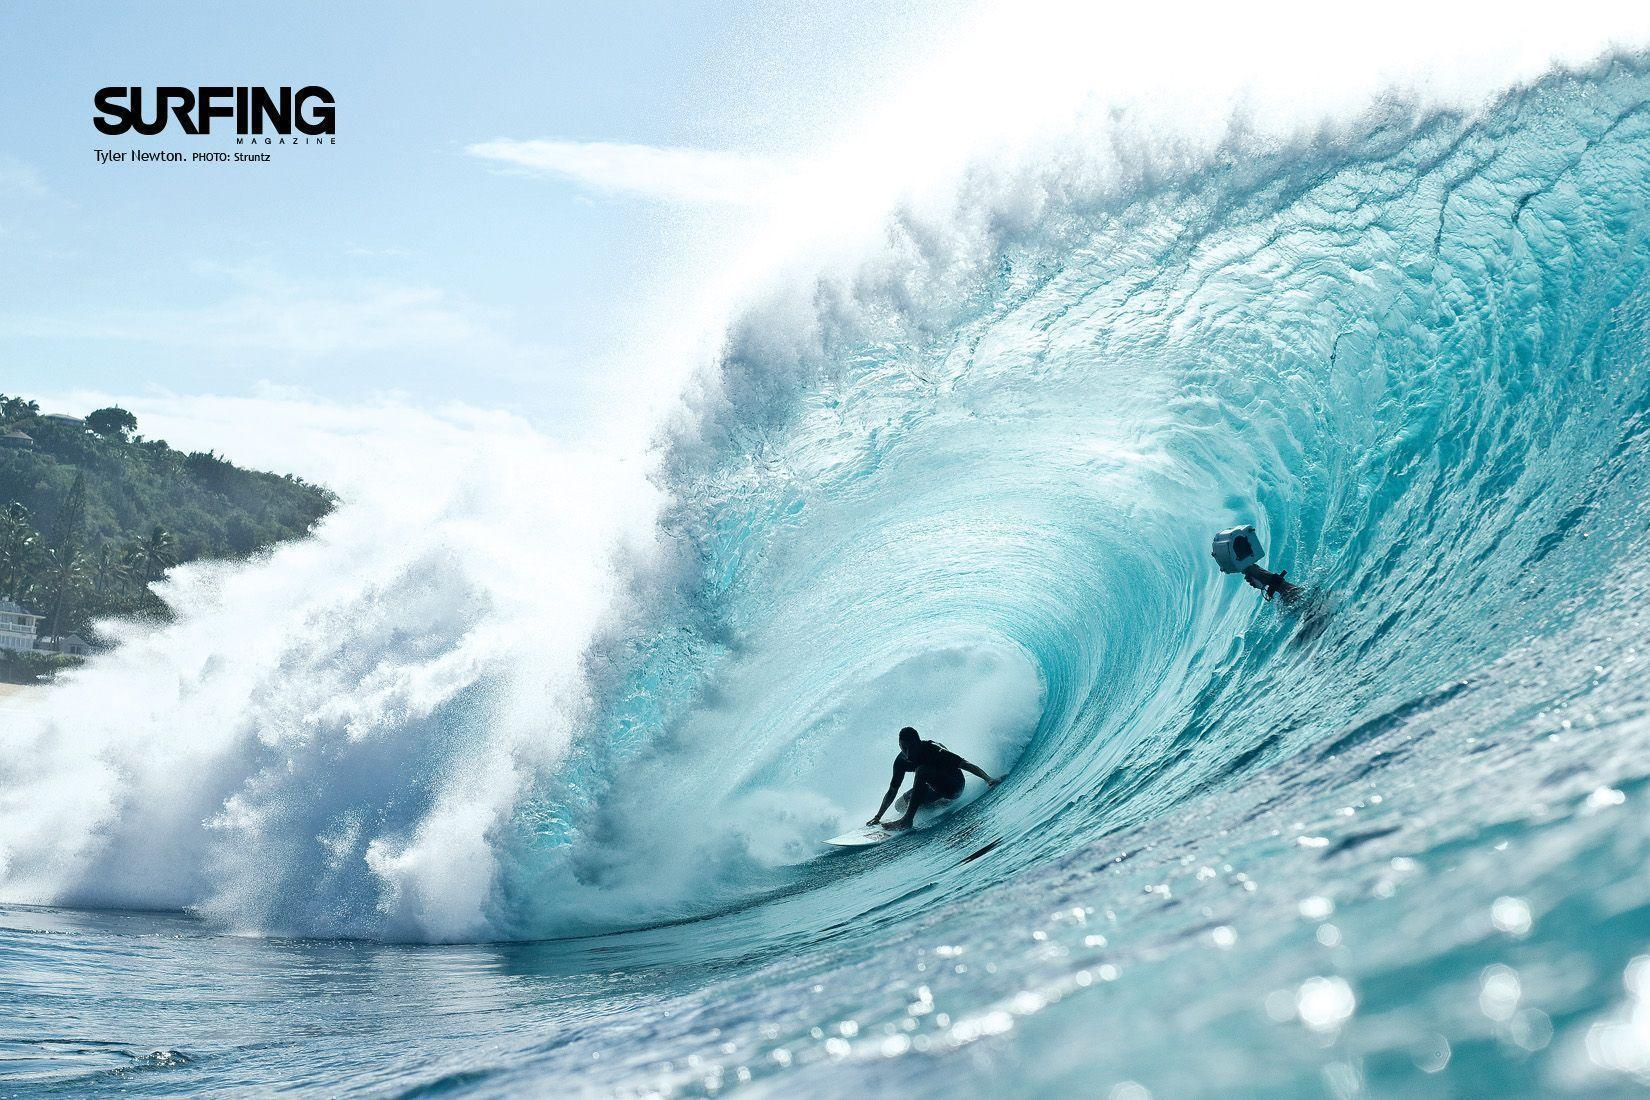 hd surfing surf big - photo #31